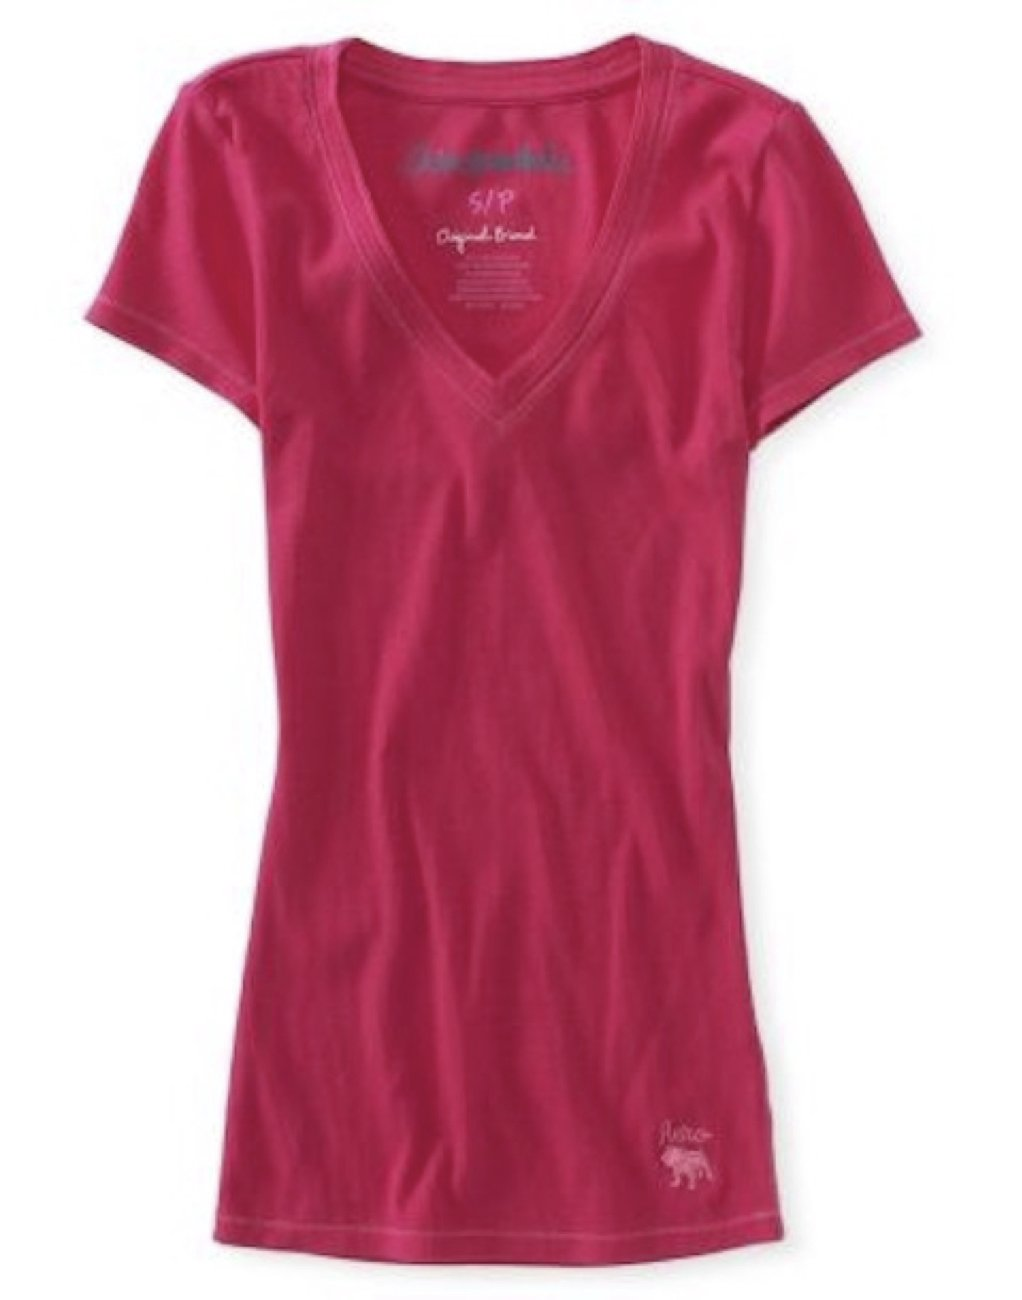 Aeropostale Womens V-Neck Stretch Ribbed Solid T-Shirt Pink Medium